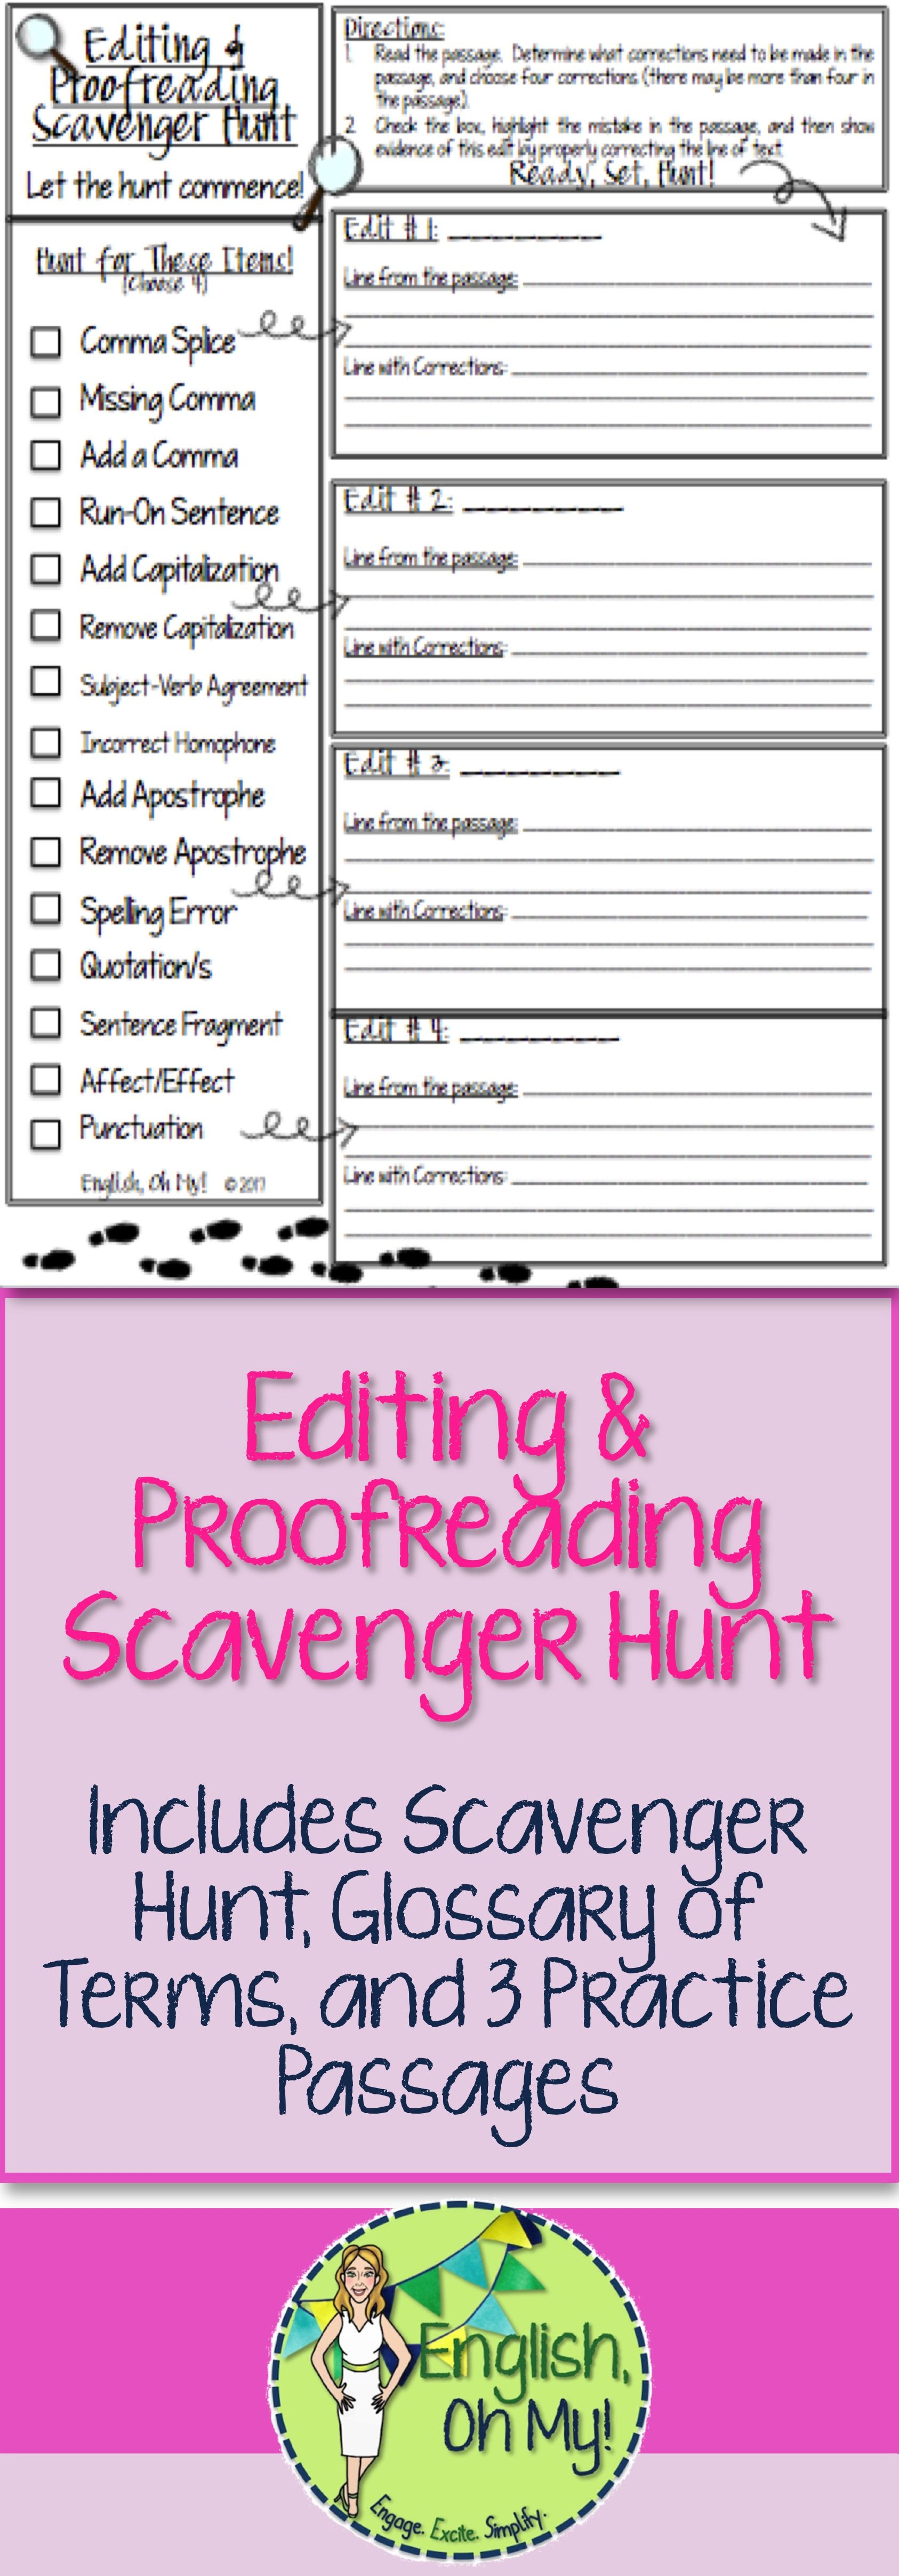 Editing Proofreading Scavenger Hunt With Images